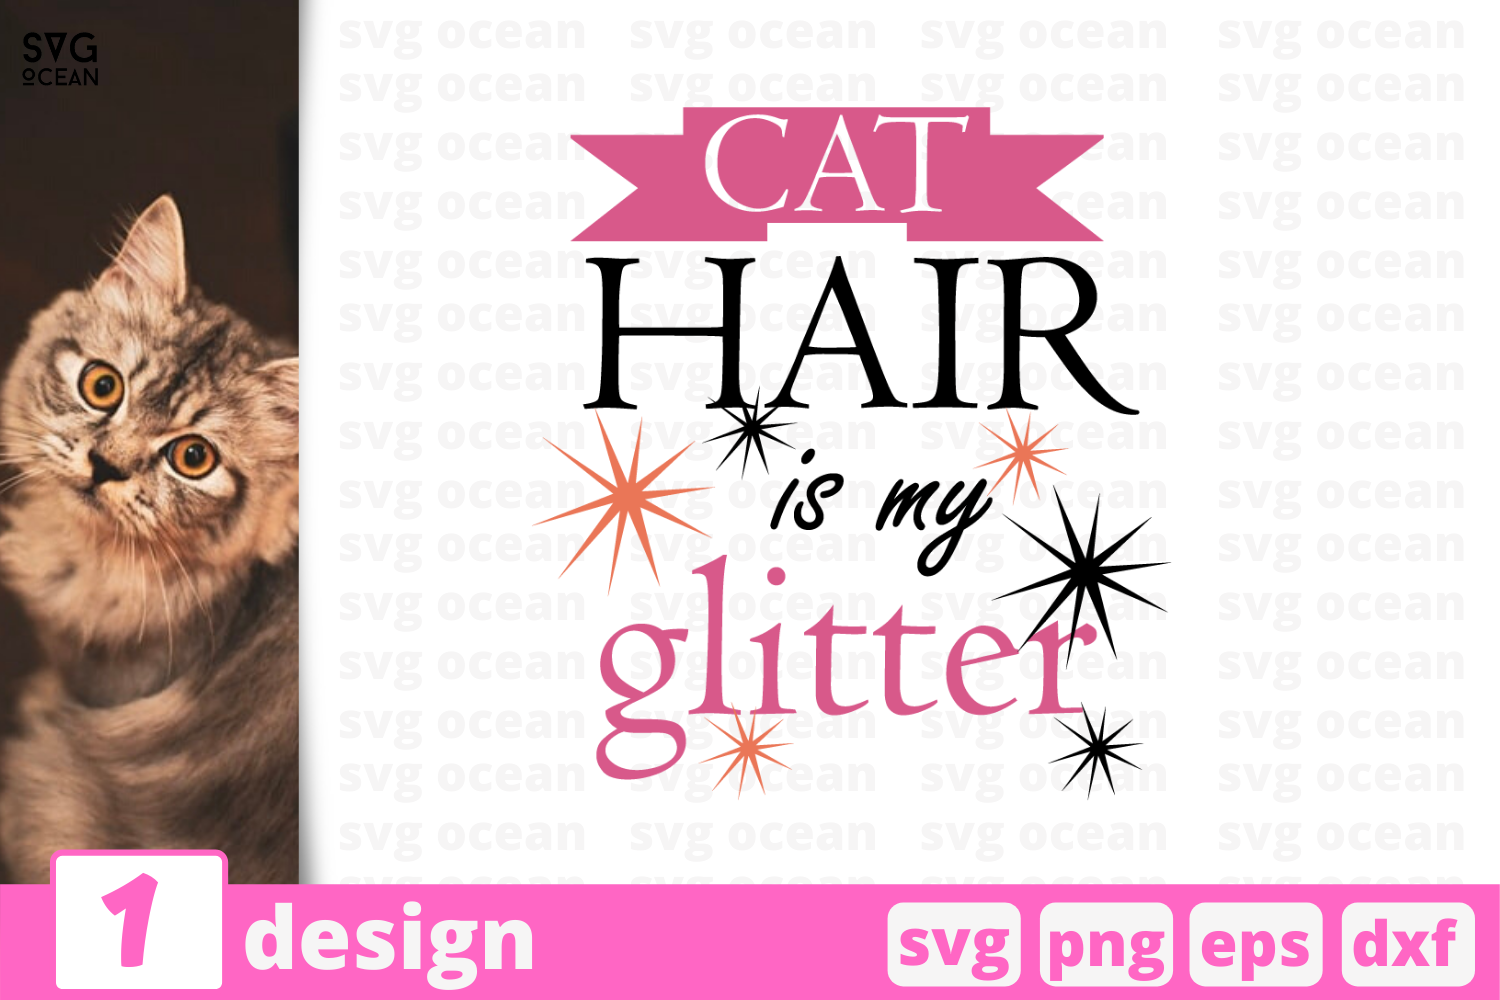 Download Free 1 Cat Hair Is My Glitter Svg Cricut Graphic By Svgocean for Cricut Explore, Silhouette and other cutting machines.